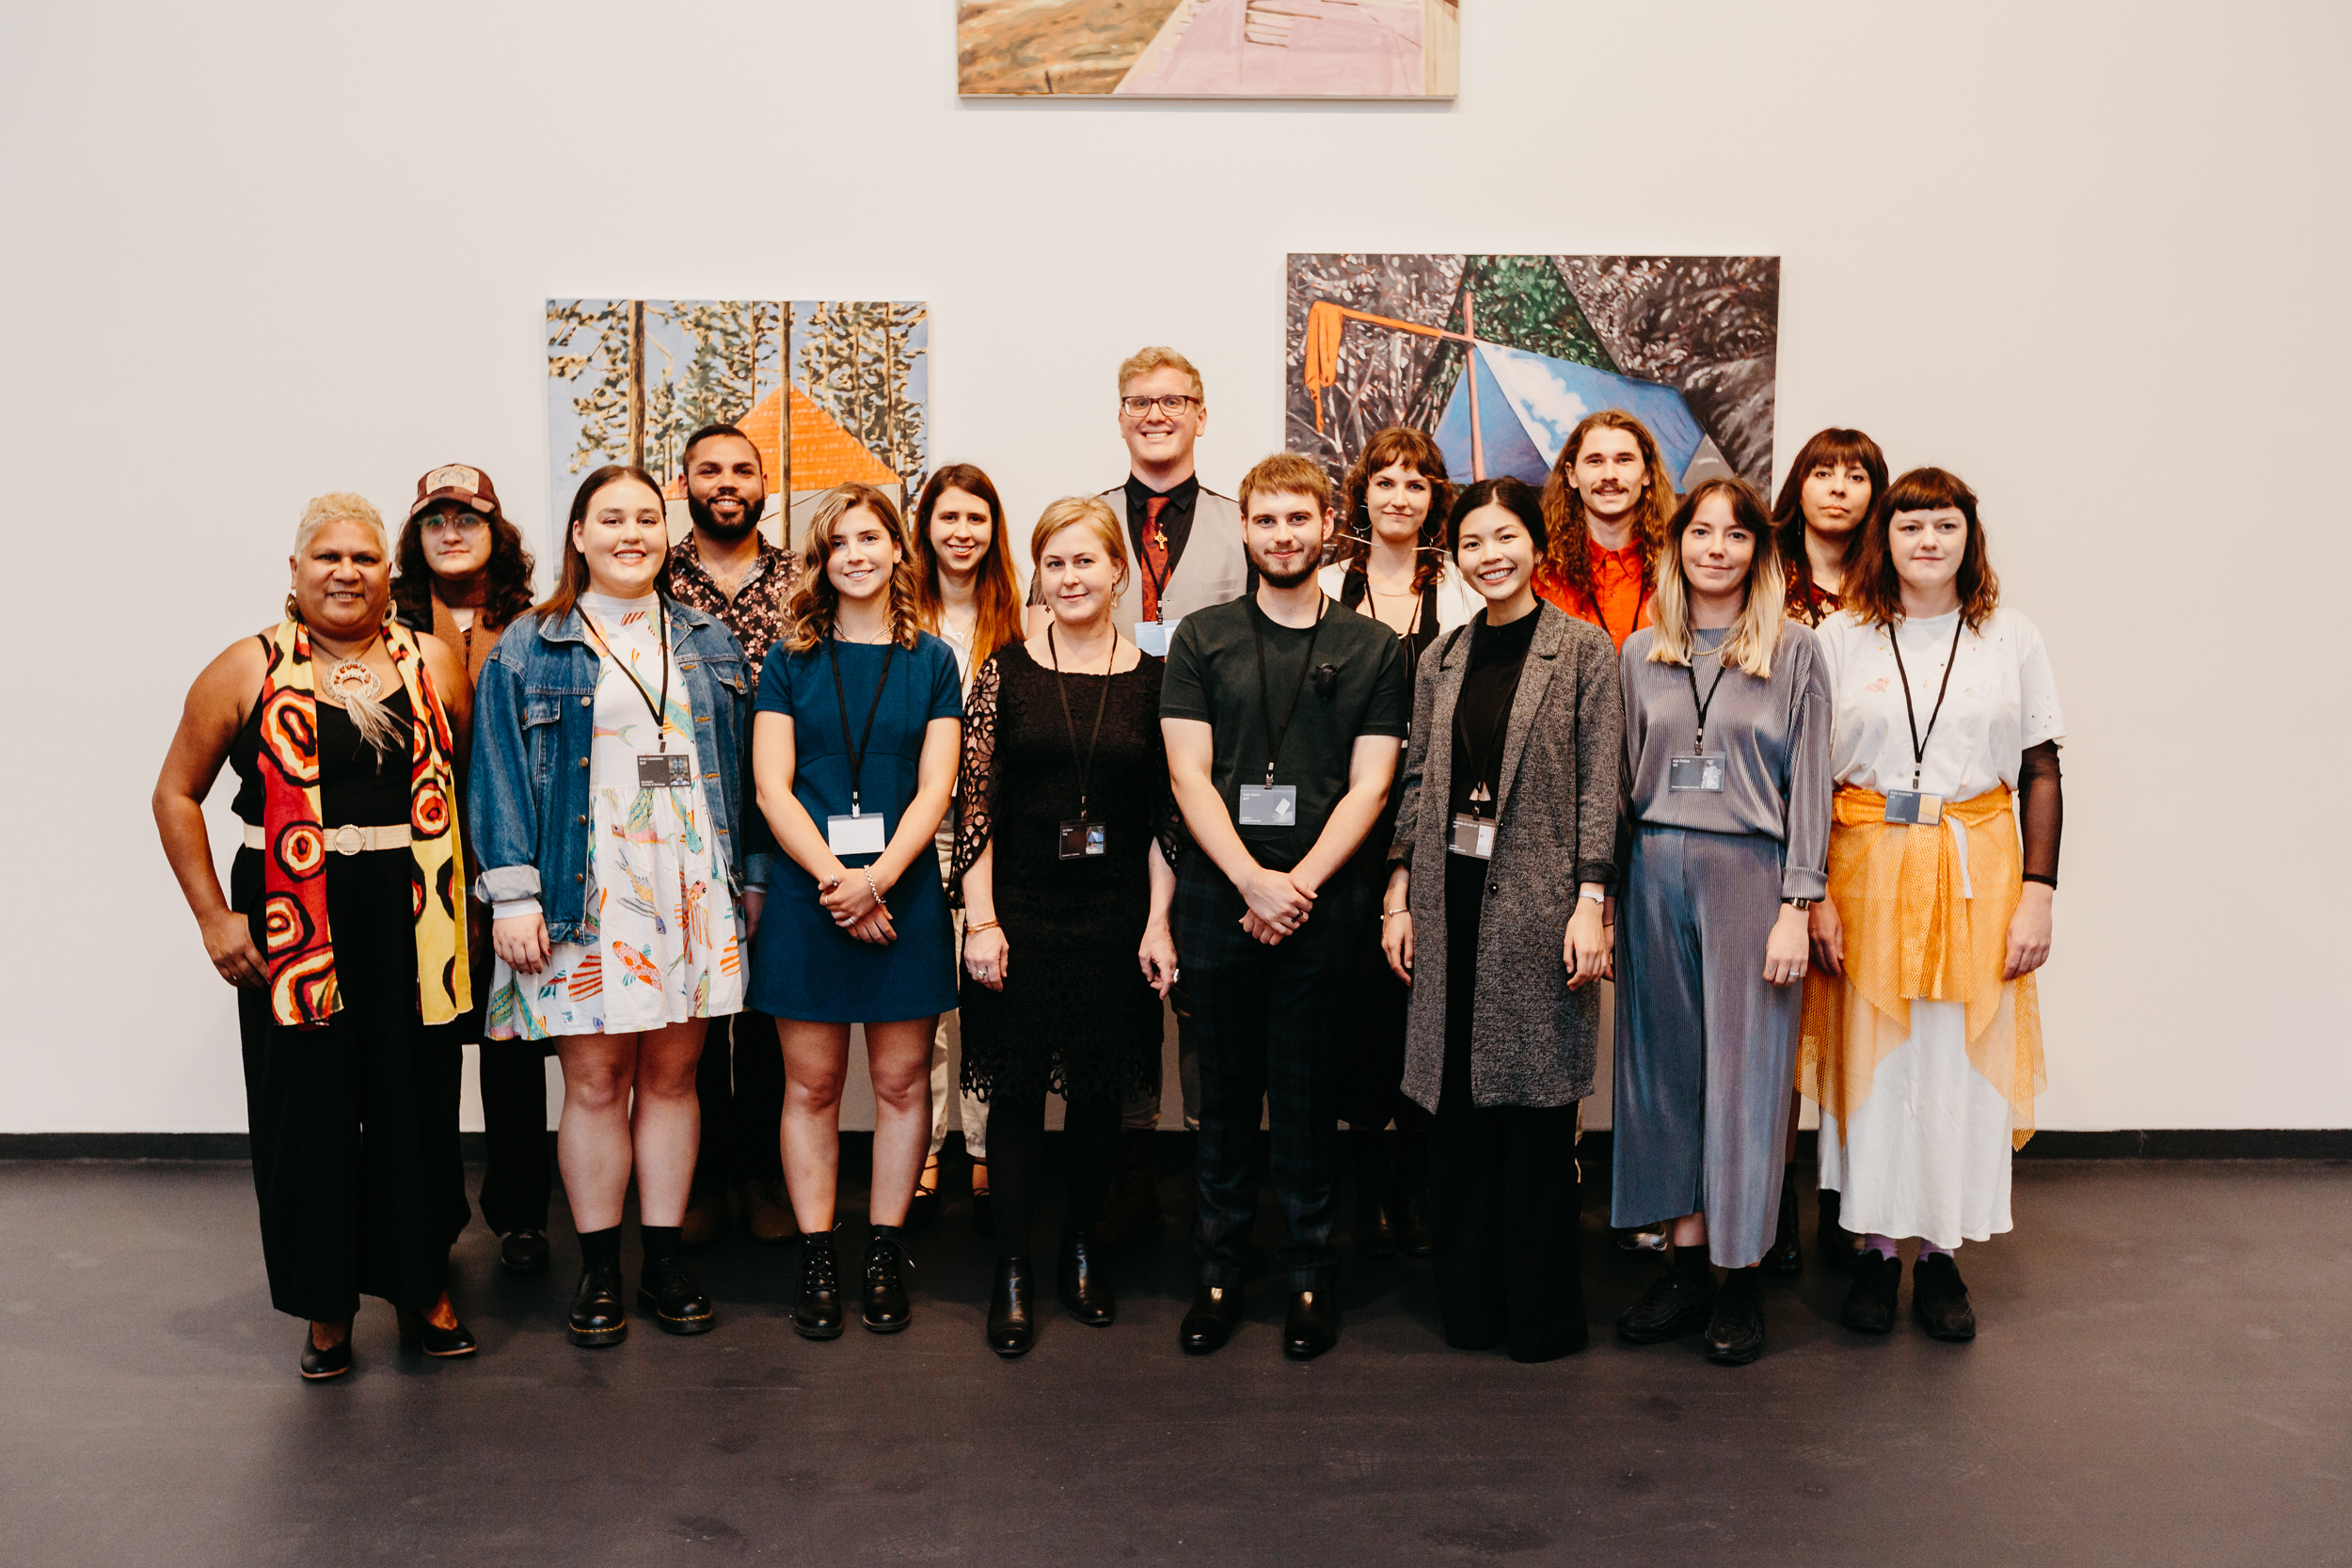 Opening night of Hatched 2019, Hatched artists. Photo: OK Media & PICA